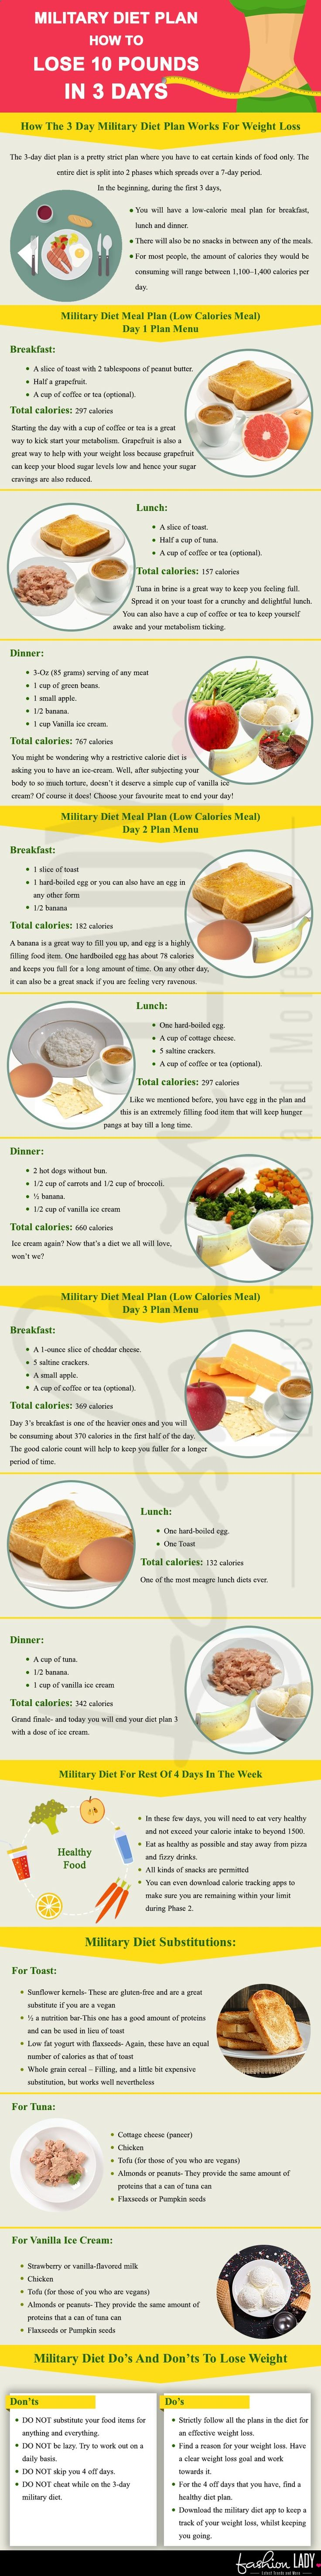 Military Diet Plan – Here's How You Can Lose 10 Pounds In 3 Days